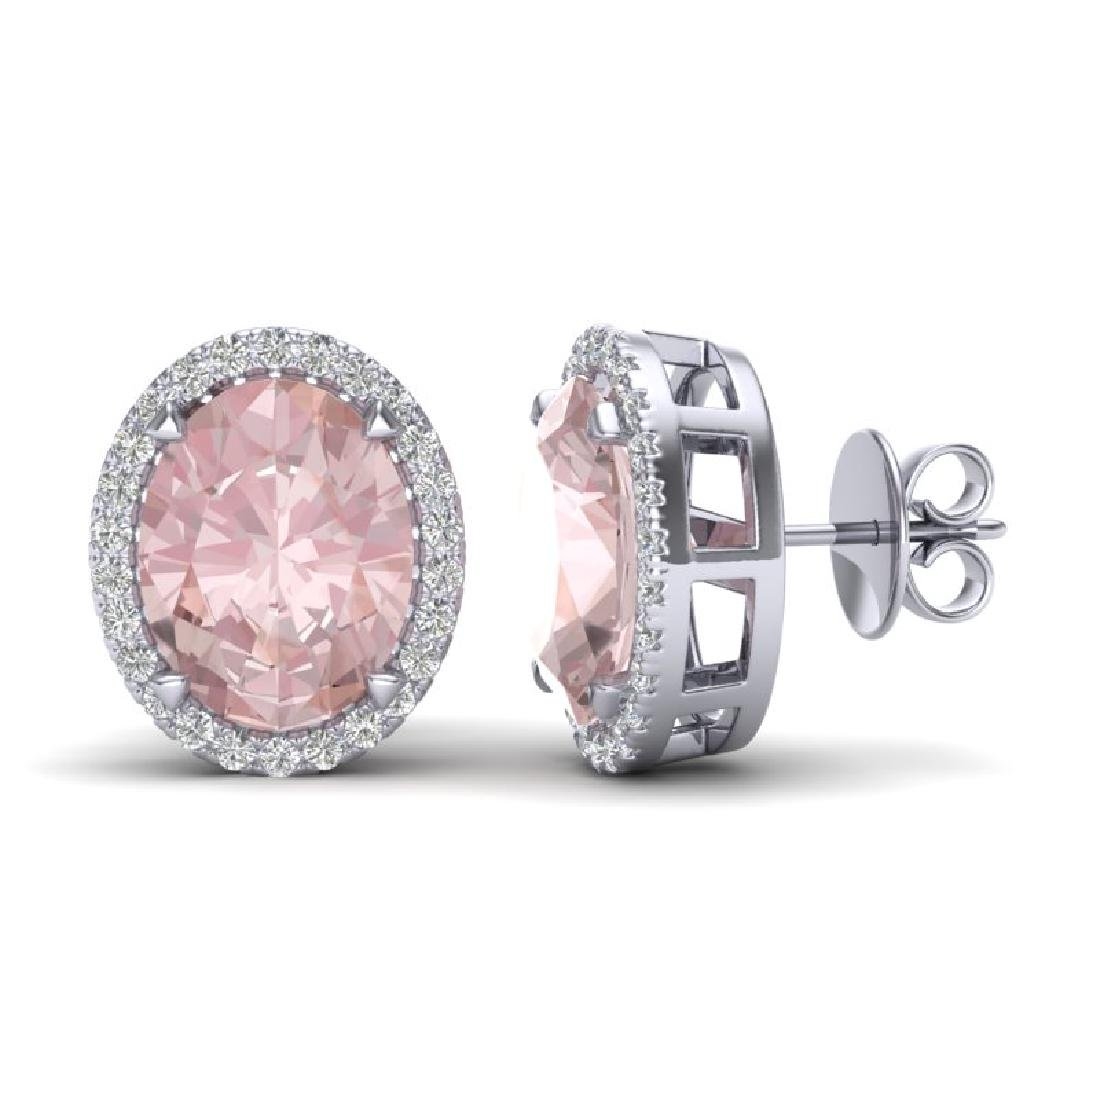 5.50 CTW Morganite & Micro VS/SI Diamond Halo Earrings - 2